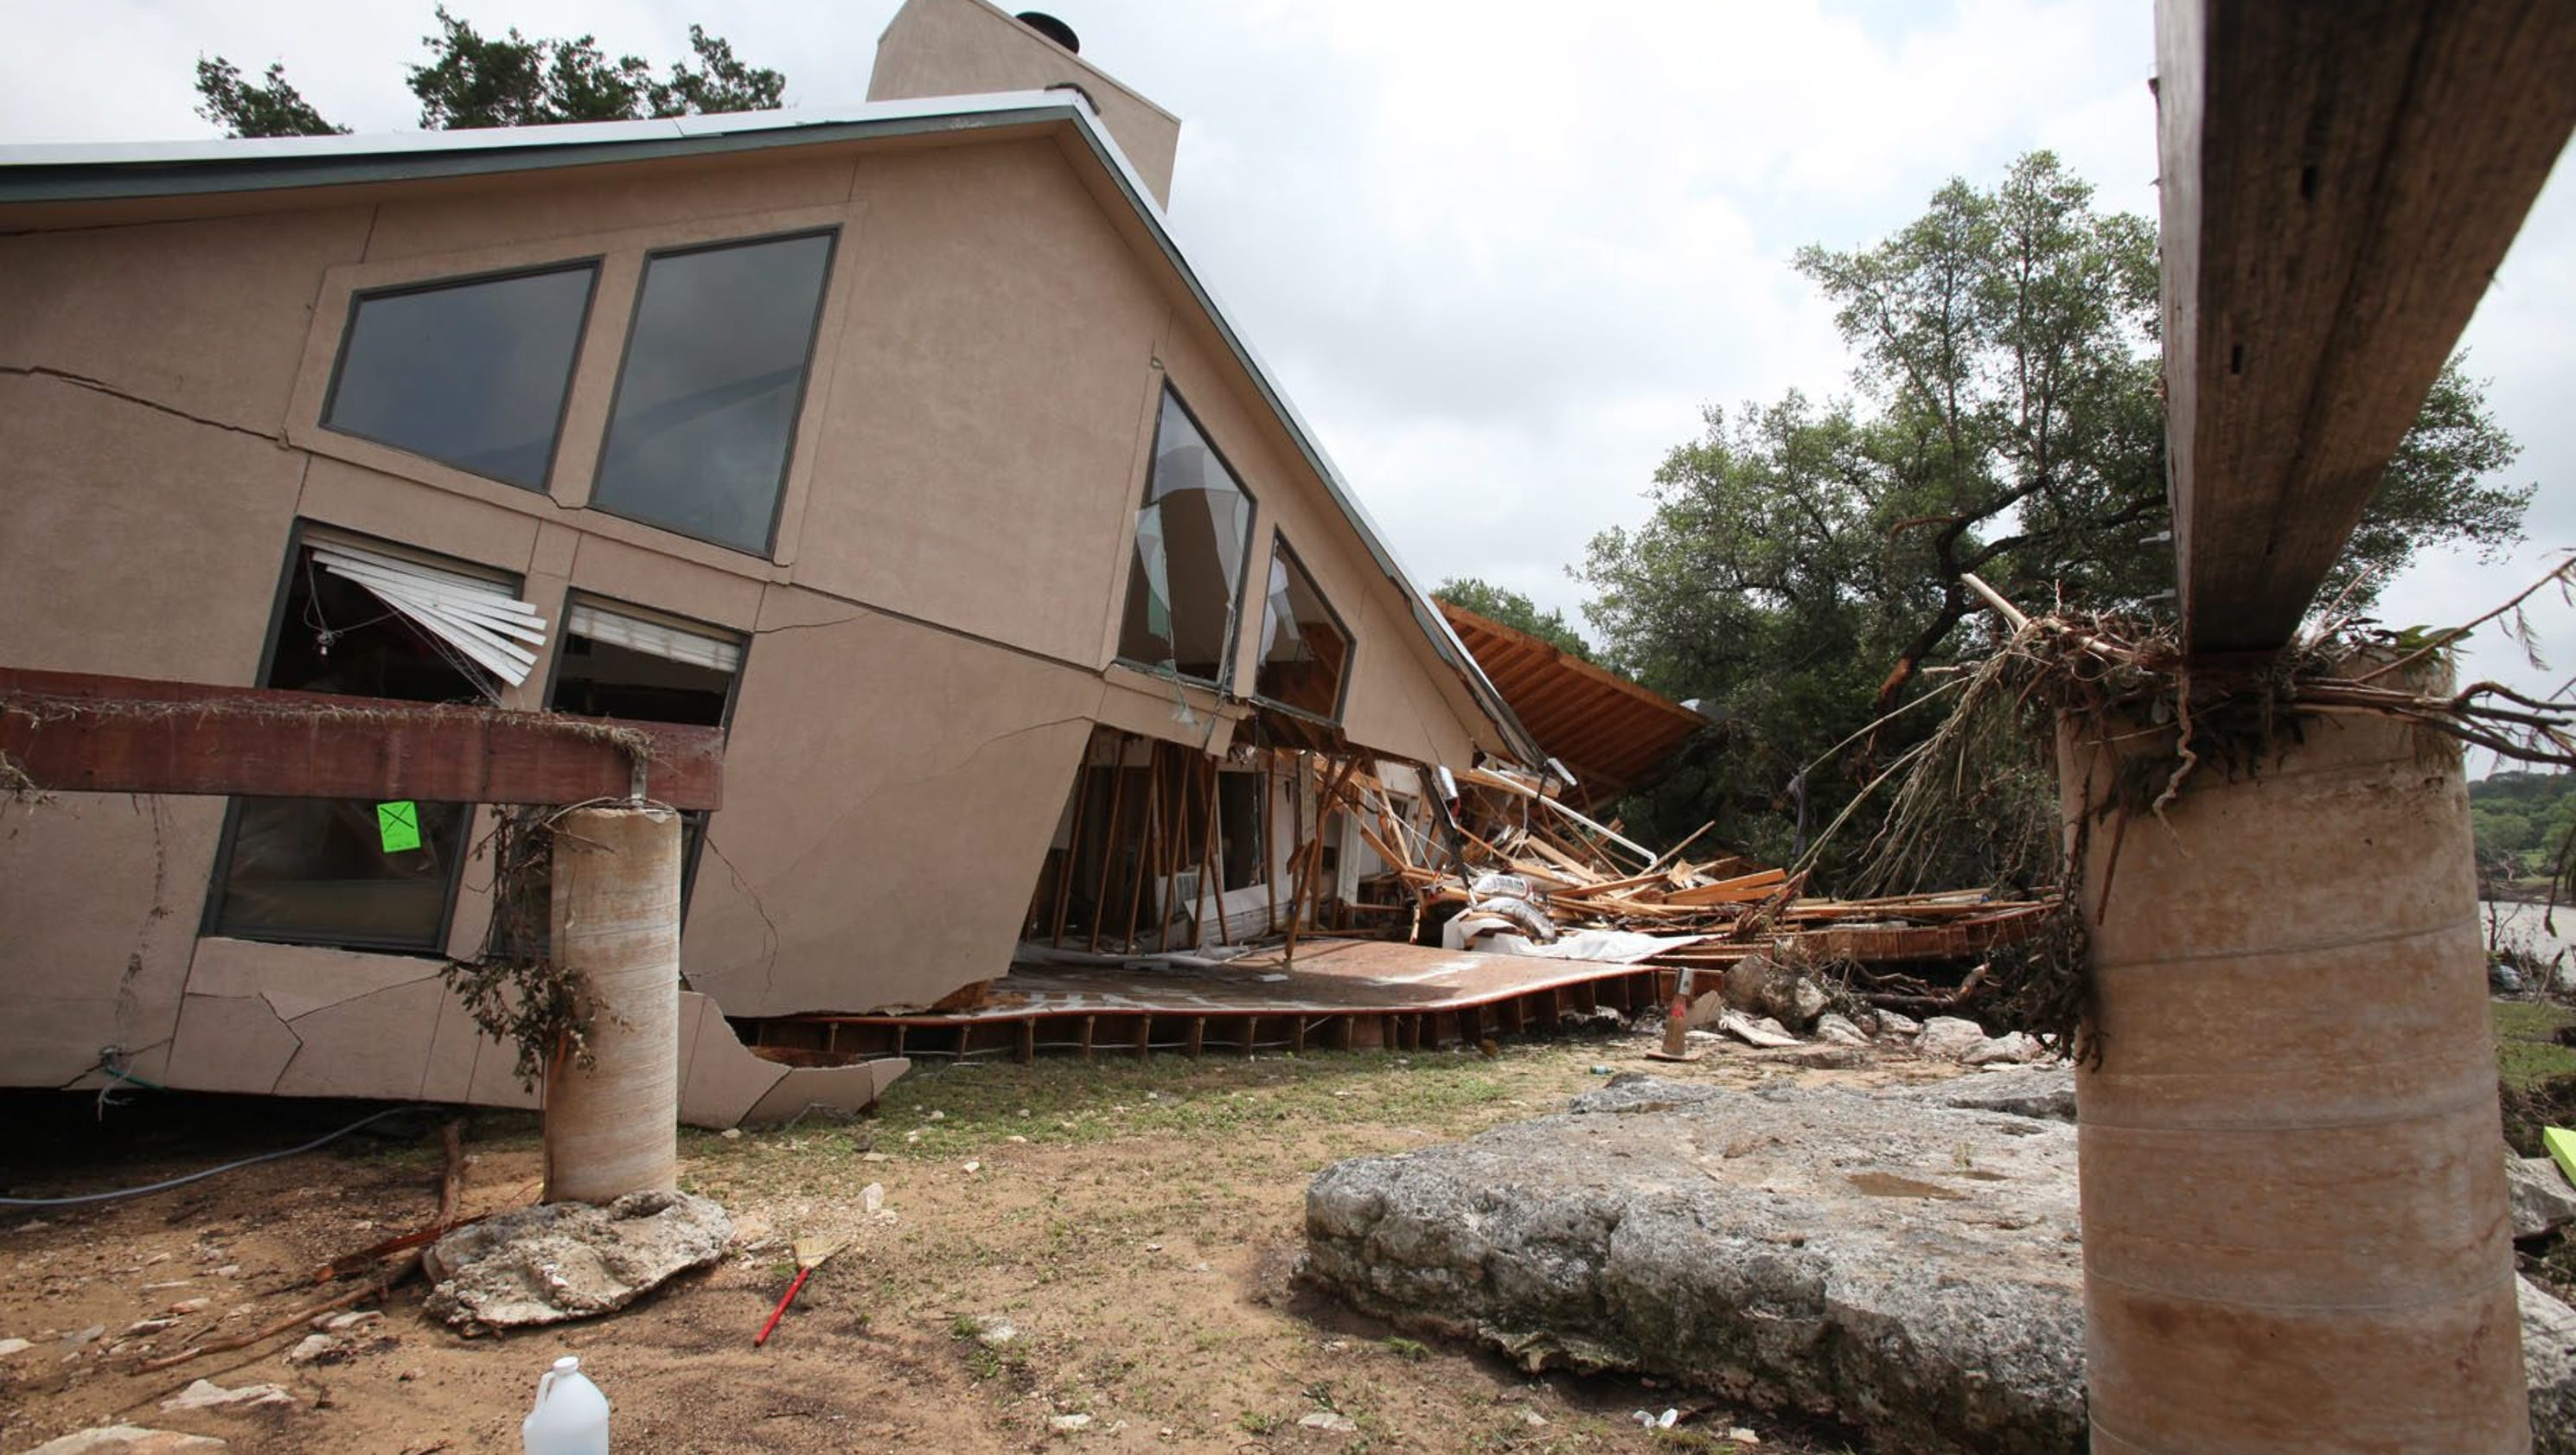 In Texas, flooding leaves disaster in its wake